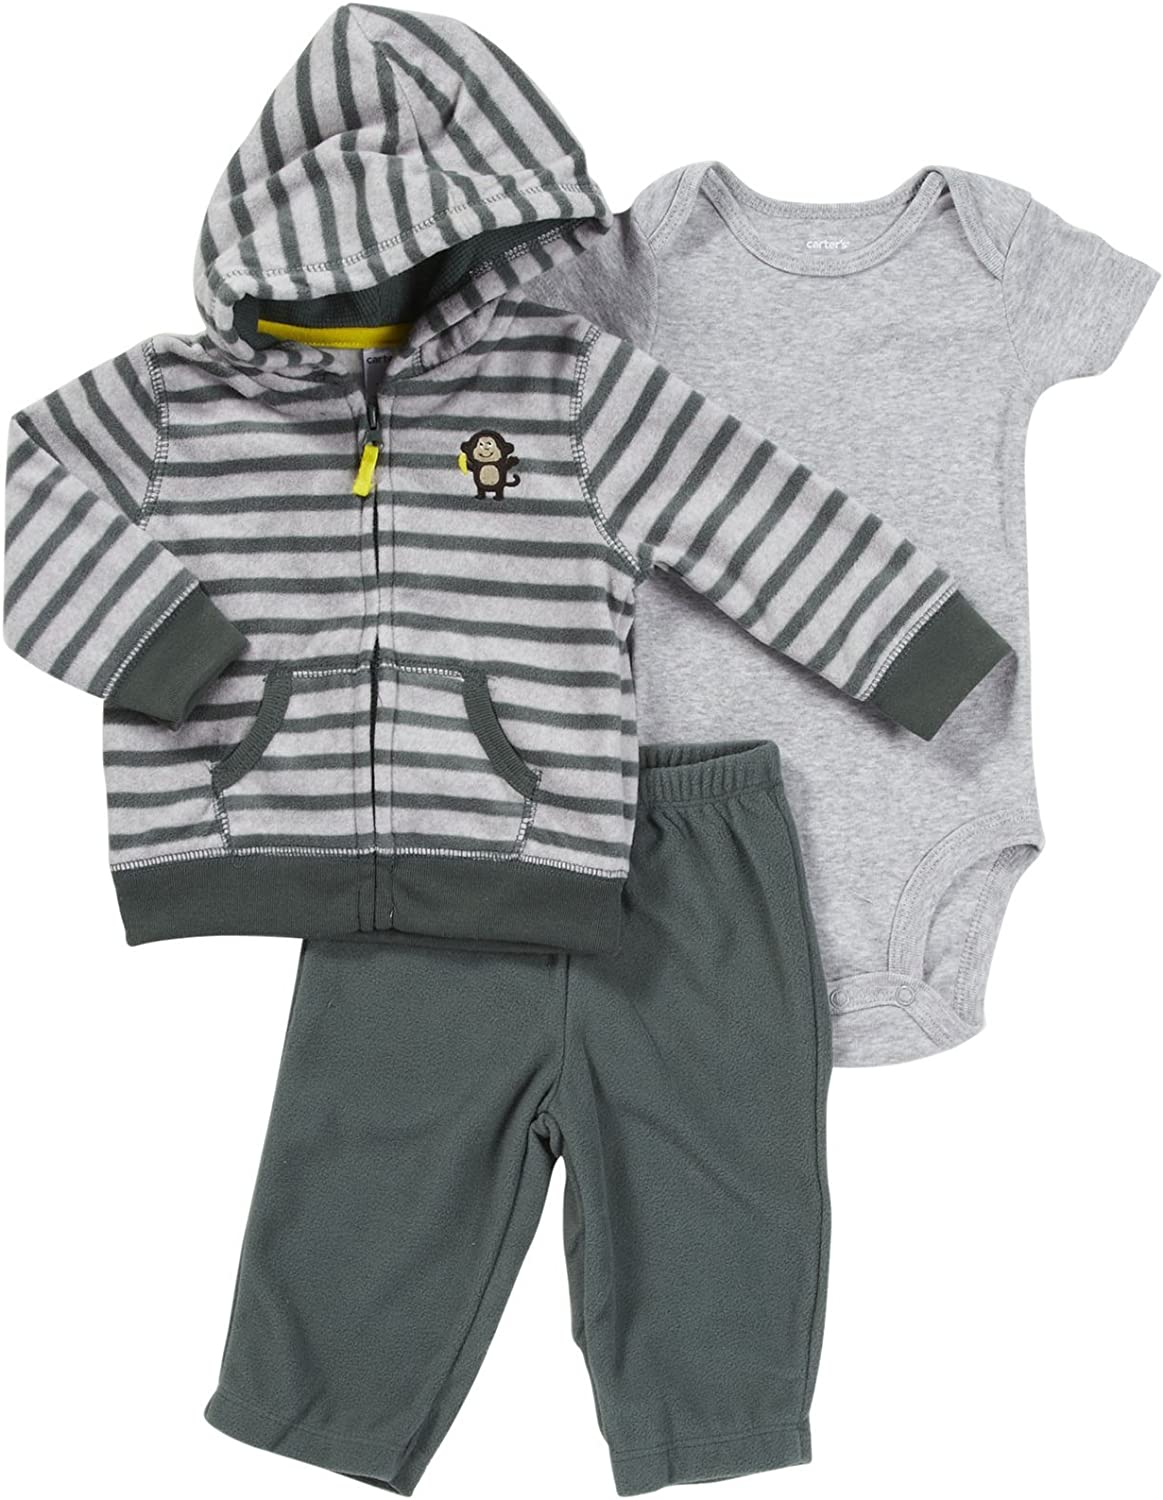 0-24 Monate Carters 3 teilig Jacke Body Hose Baby Junge Outfit Kleidung Boy 3 Teile Tiger